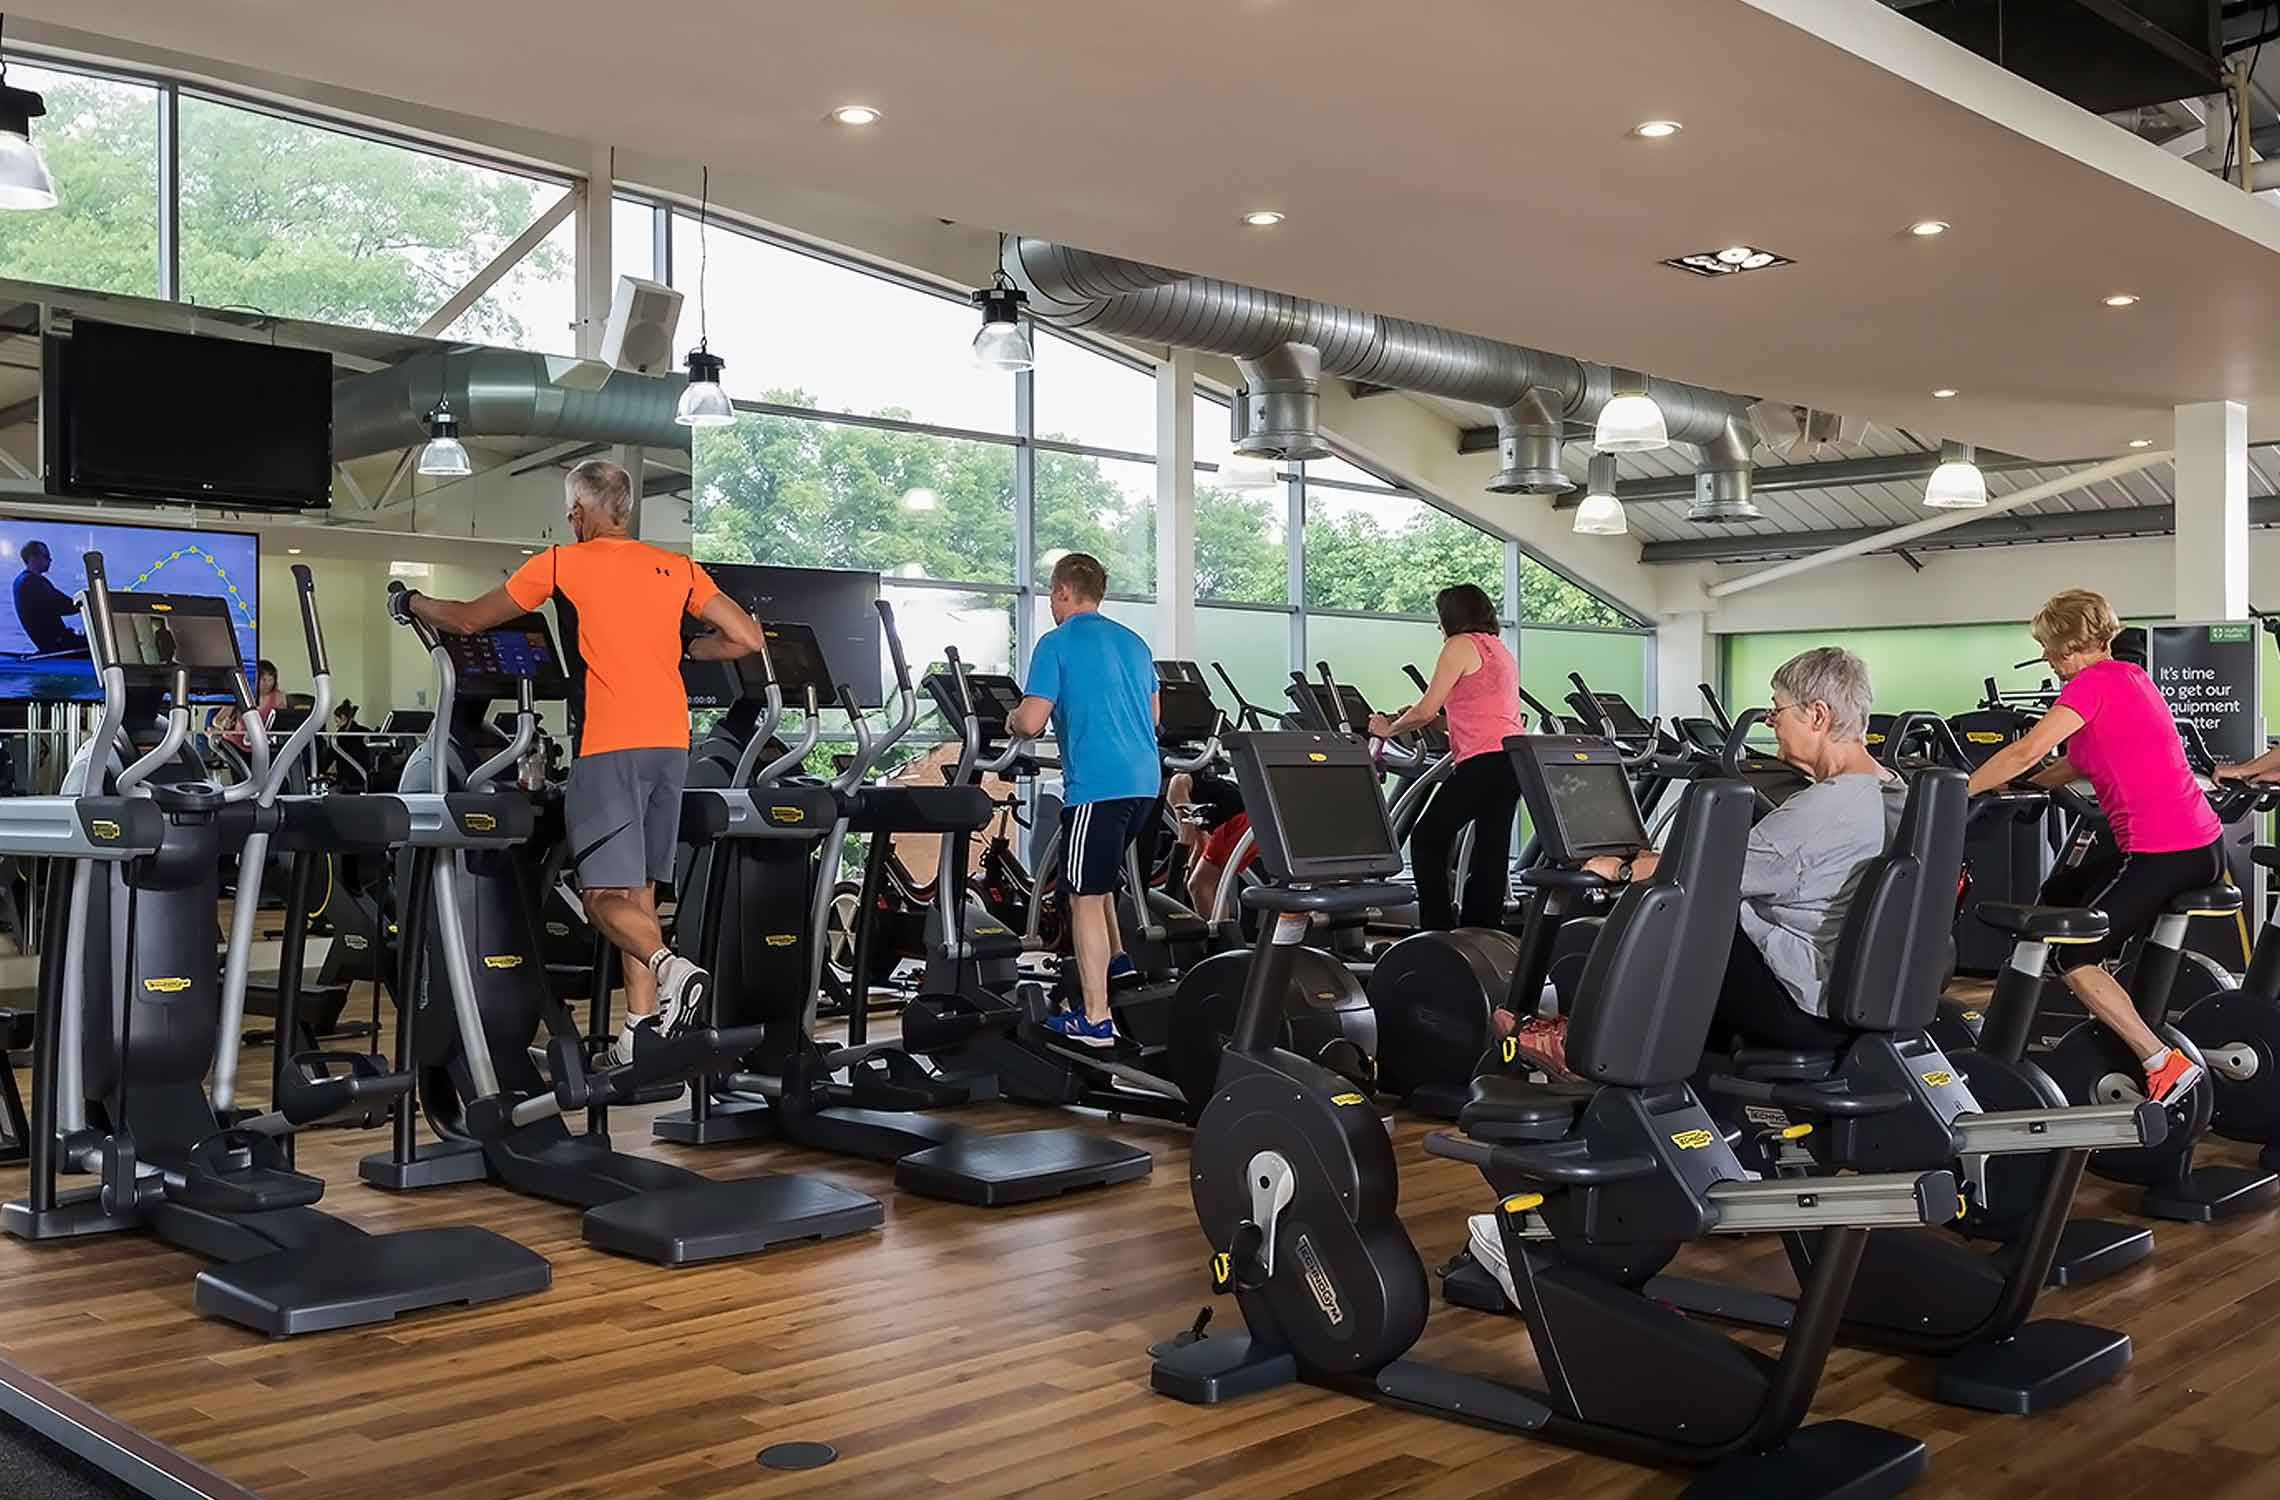 Nottingham Fitness & Wellbeing Gym